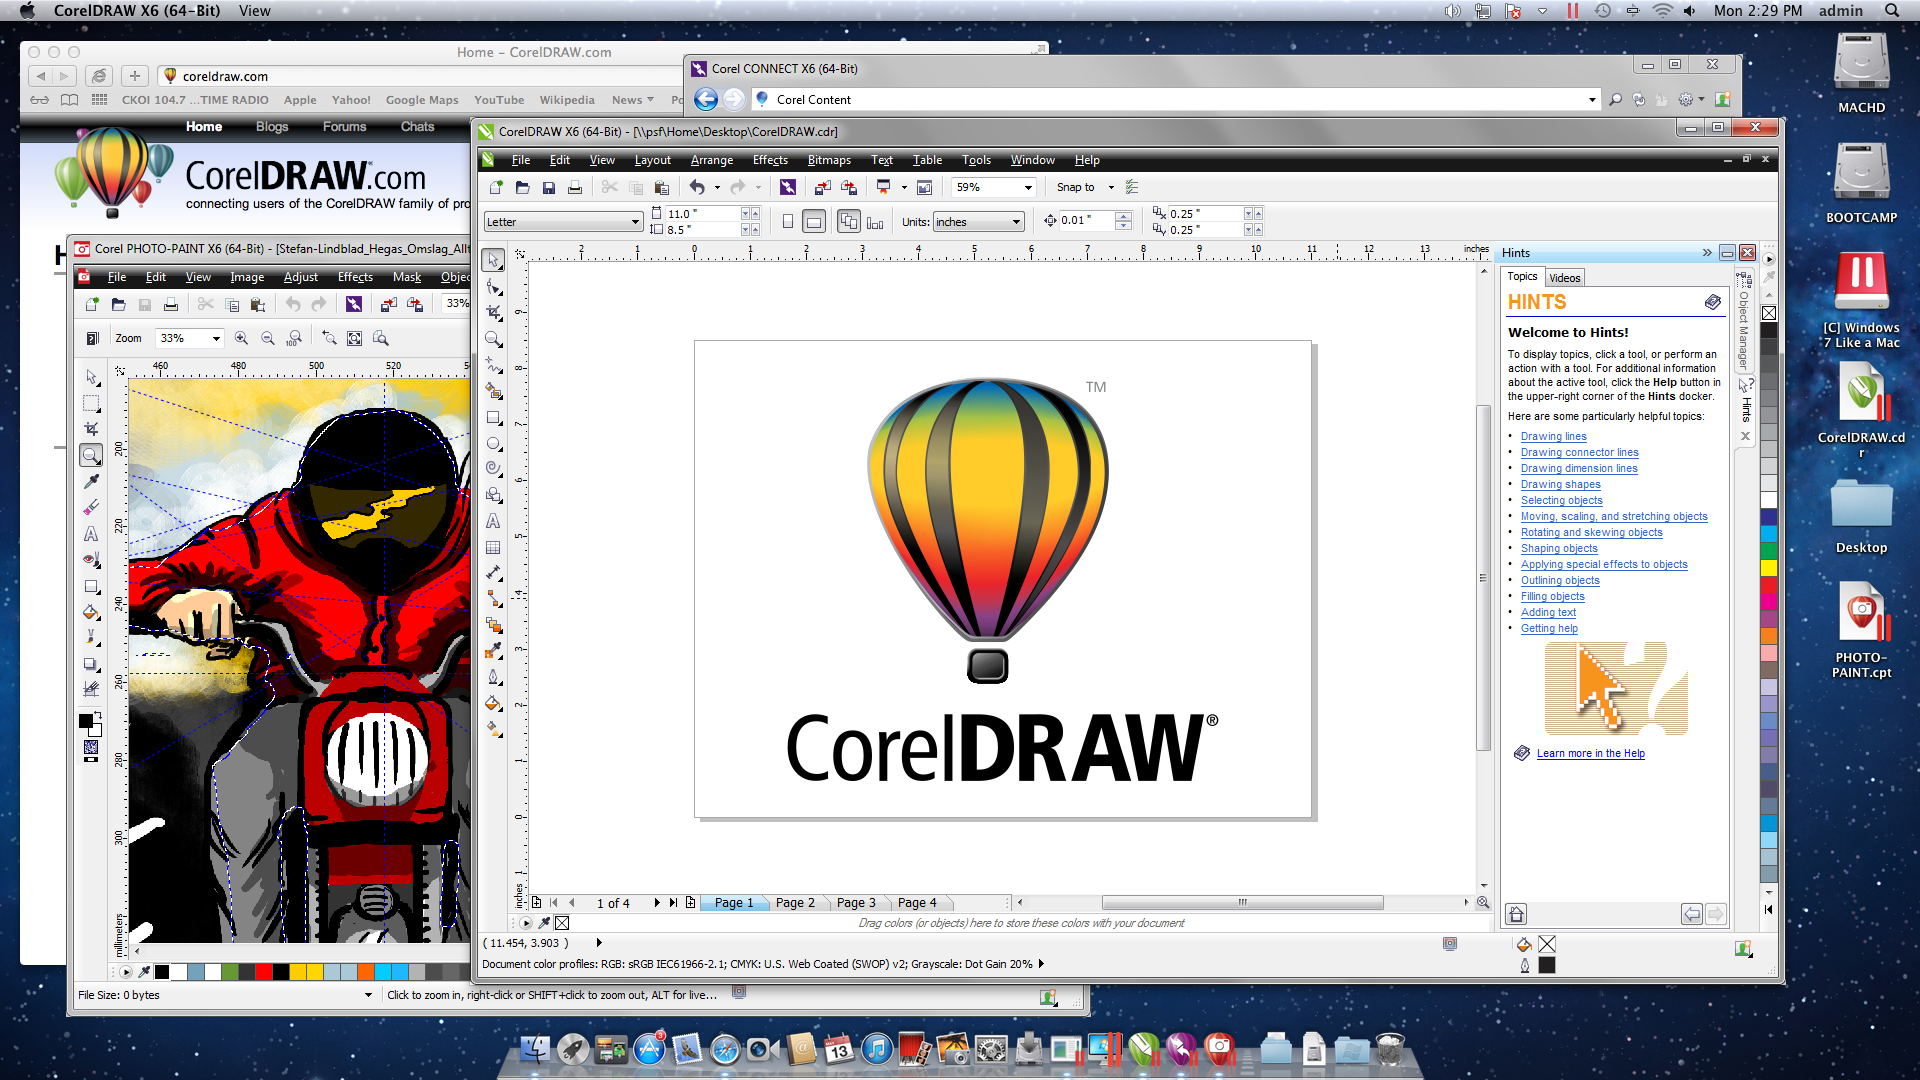 Corel draw version compatible with windows 10 - You Can Run Coreldraw On A Mac G Rard On Graphics Blogs Coreldraw Community